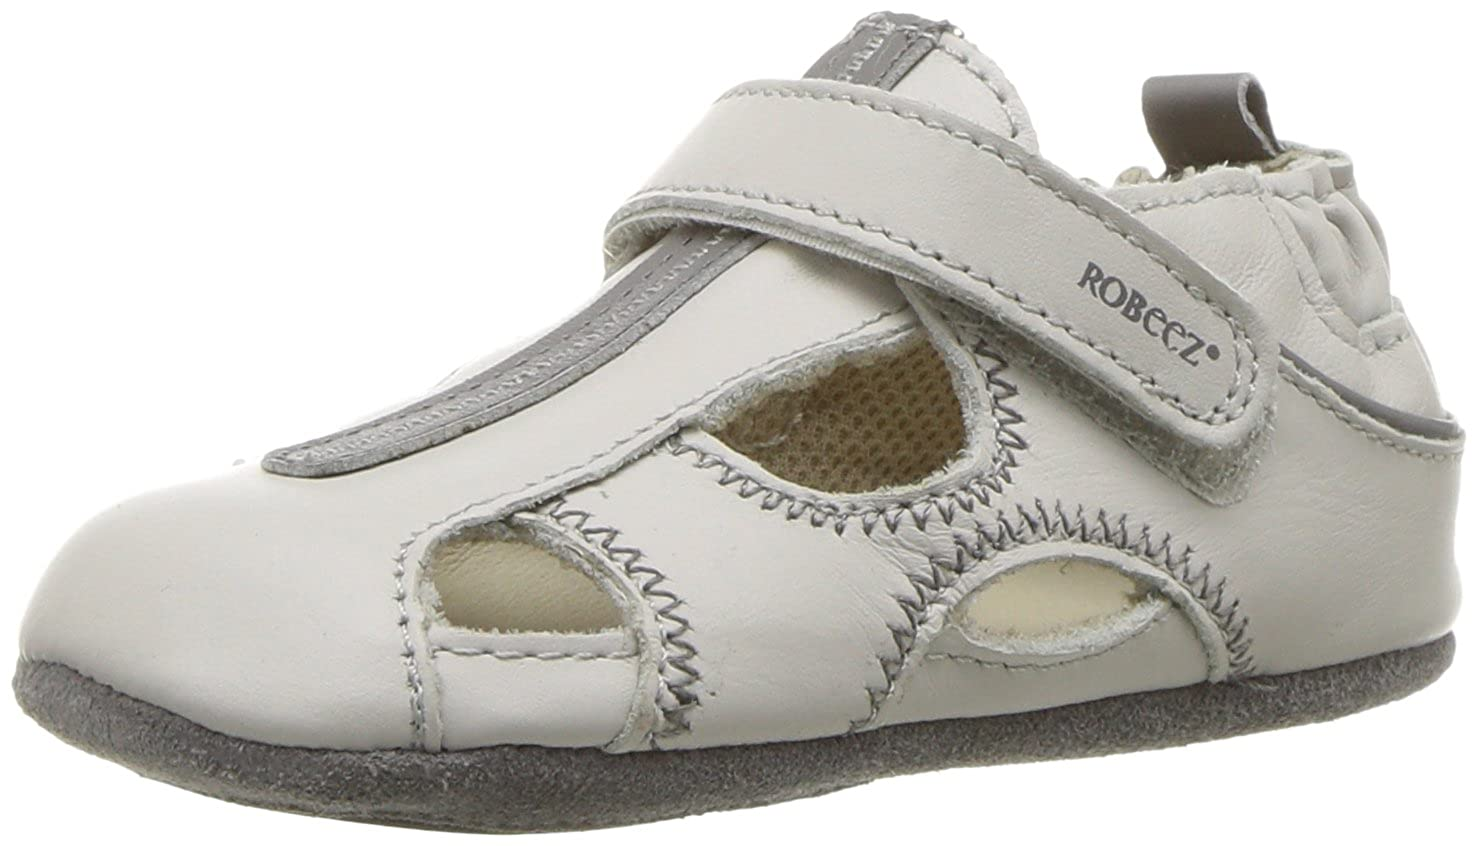 Robeez Boys' Sandal - Mini Shoez 65-3099